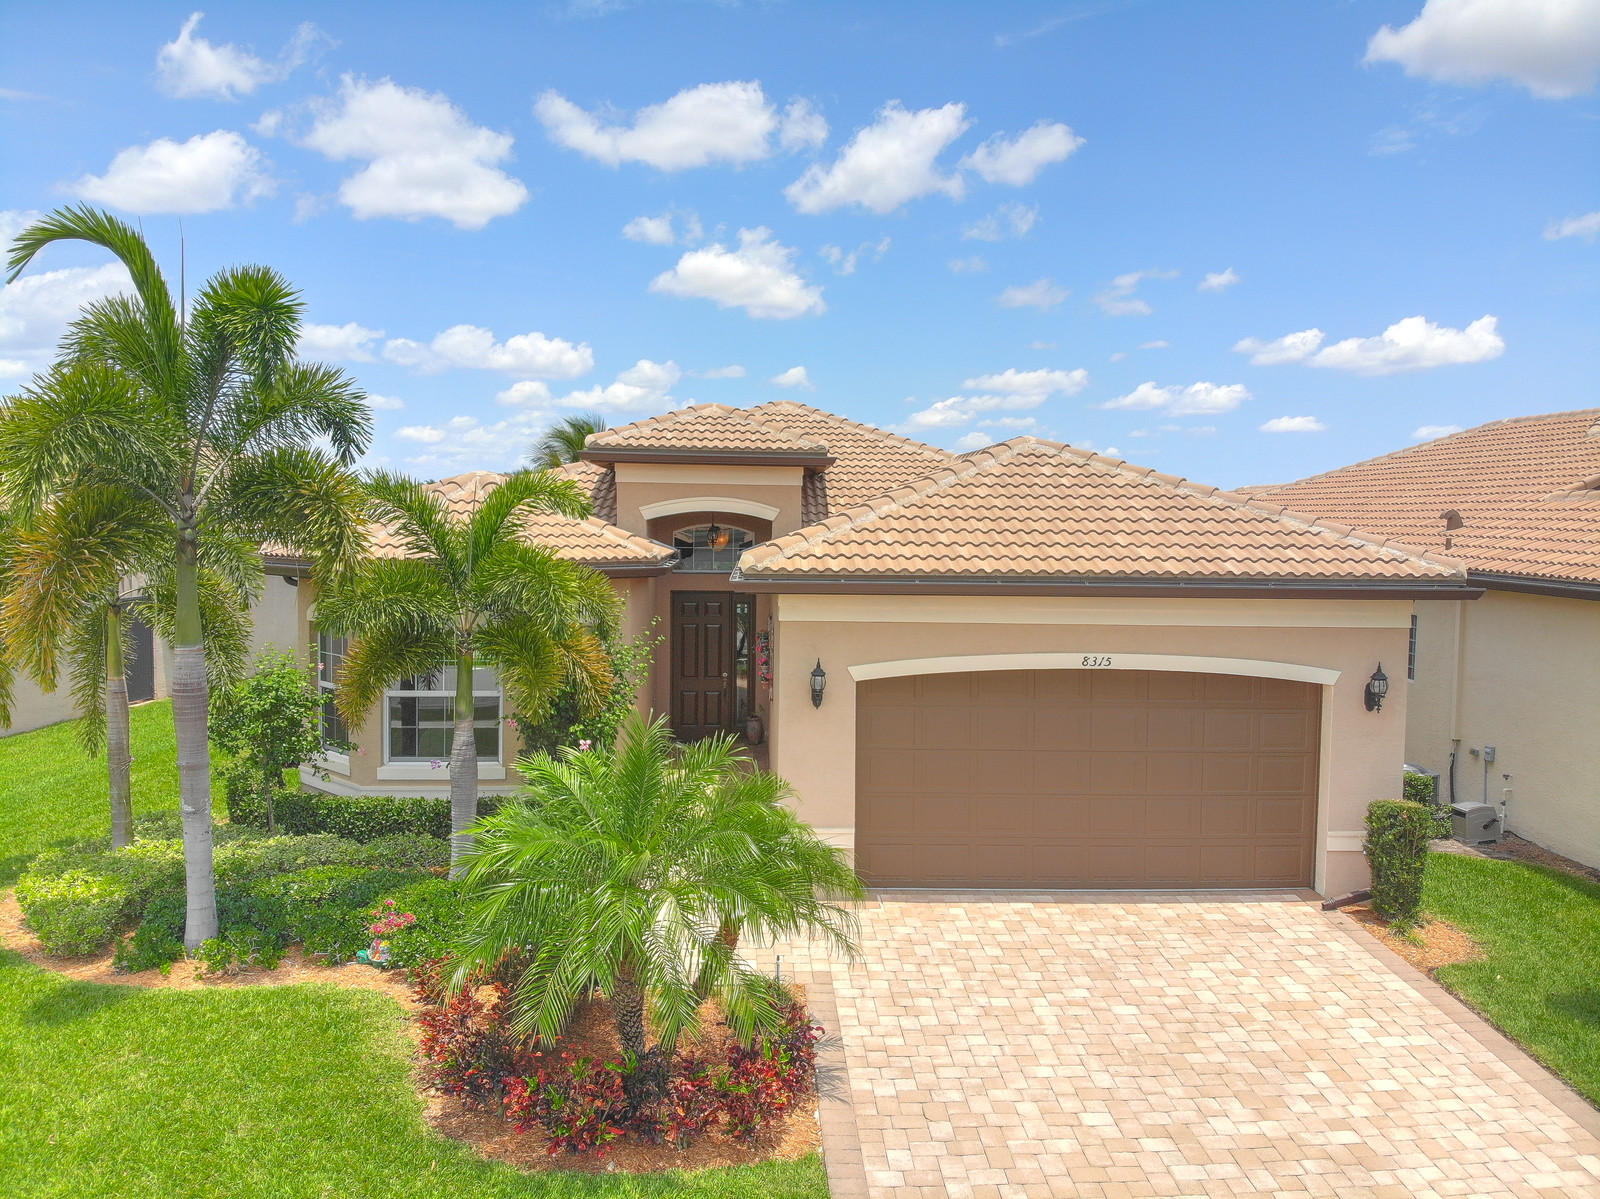 Home for sale in Gl Homes Boynton Beach Florida